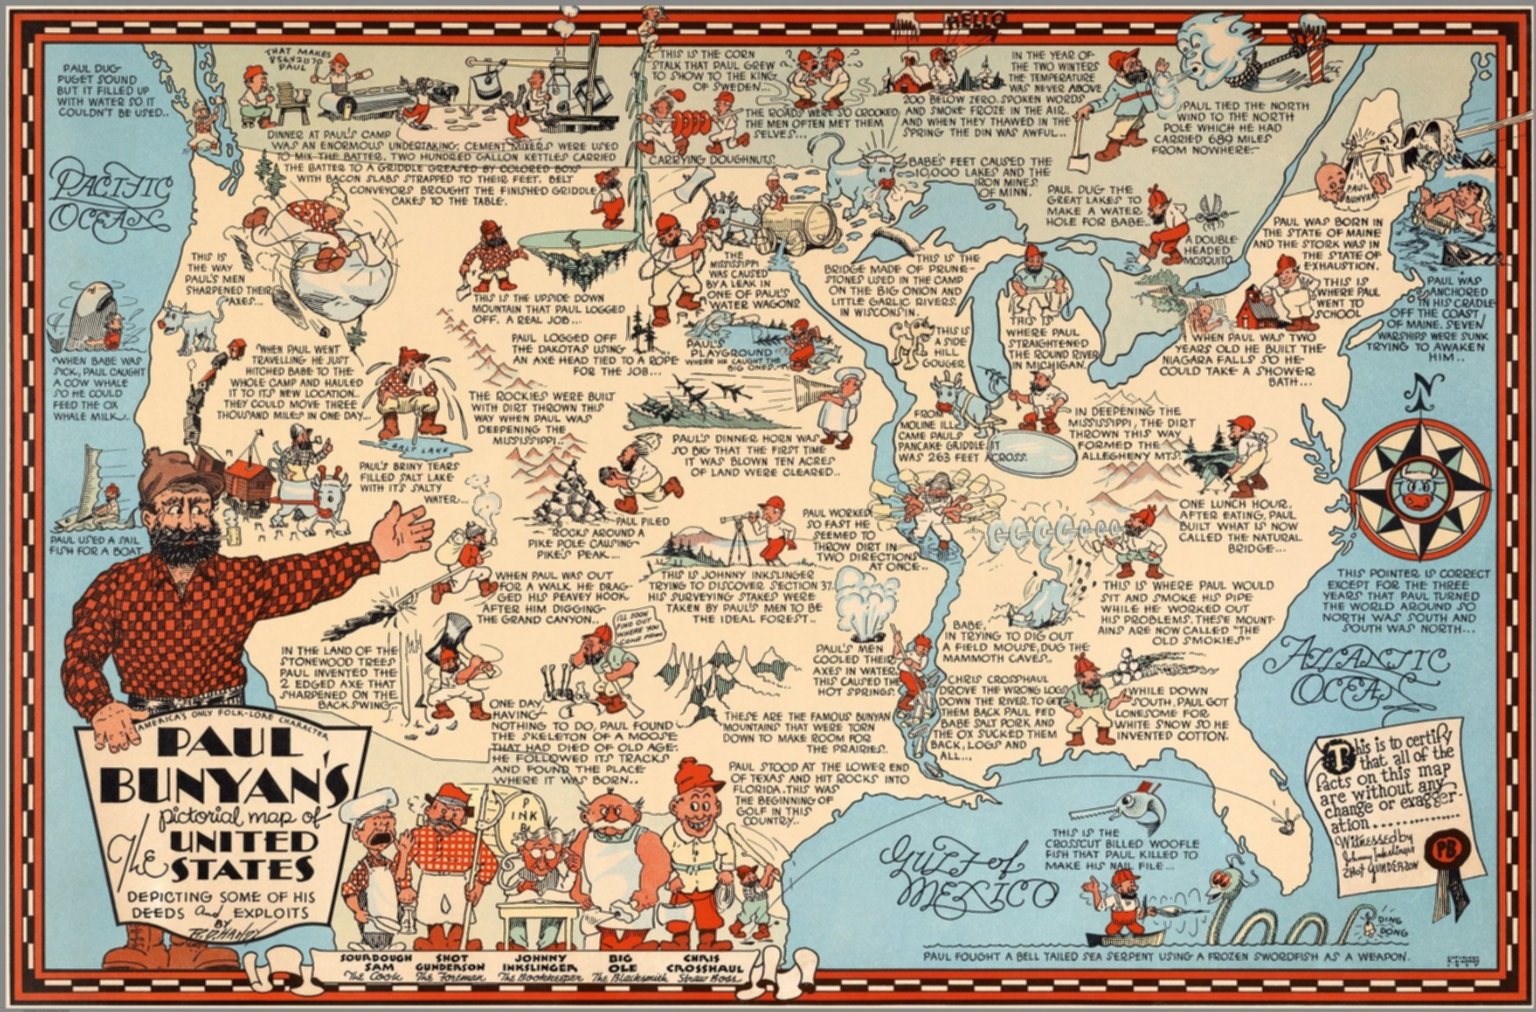 Paul Bunyans Pictorial Map Of The United States David Rumsey - Paul bunyan in us map